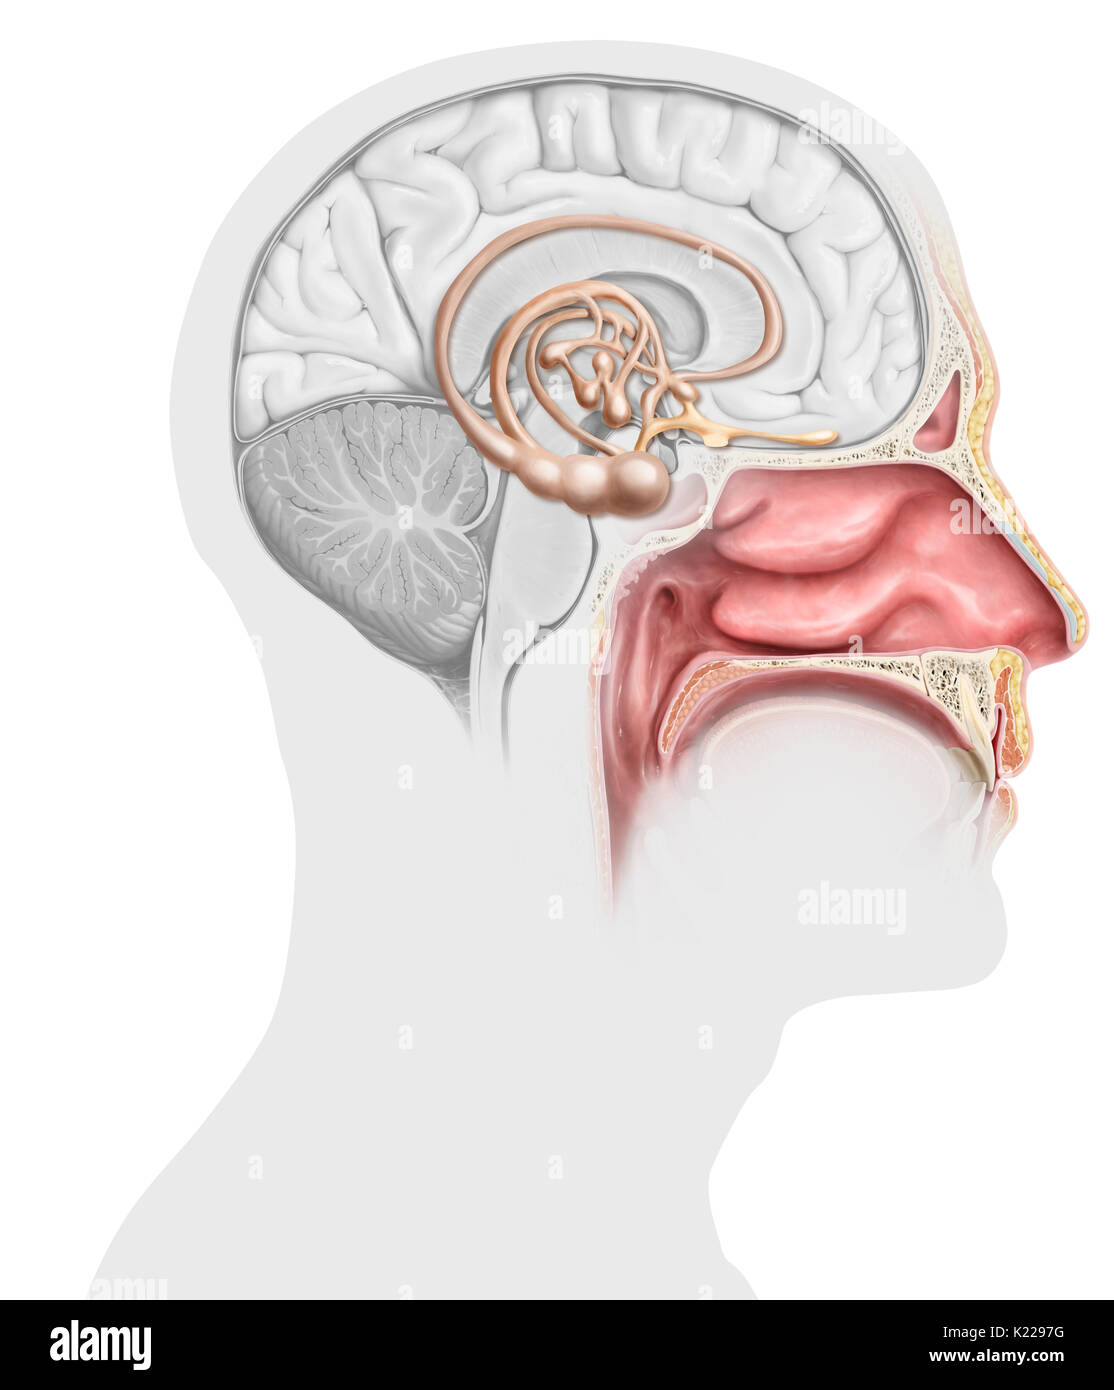 Each nasal cavity encloses an olfactory epithelium, whose stimulation by odorous molecules generates nerve signals. These are routed to the brain, where the odors are analyzed and associated with emotions and memories. - Stock Image